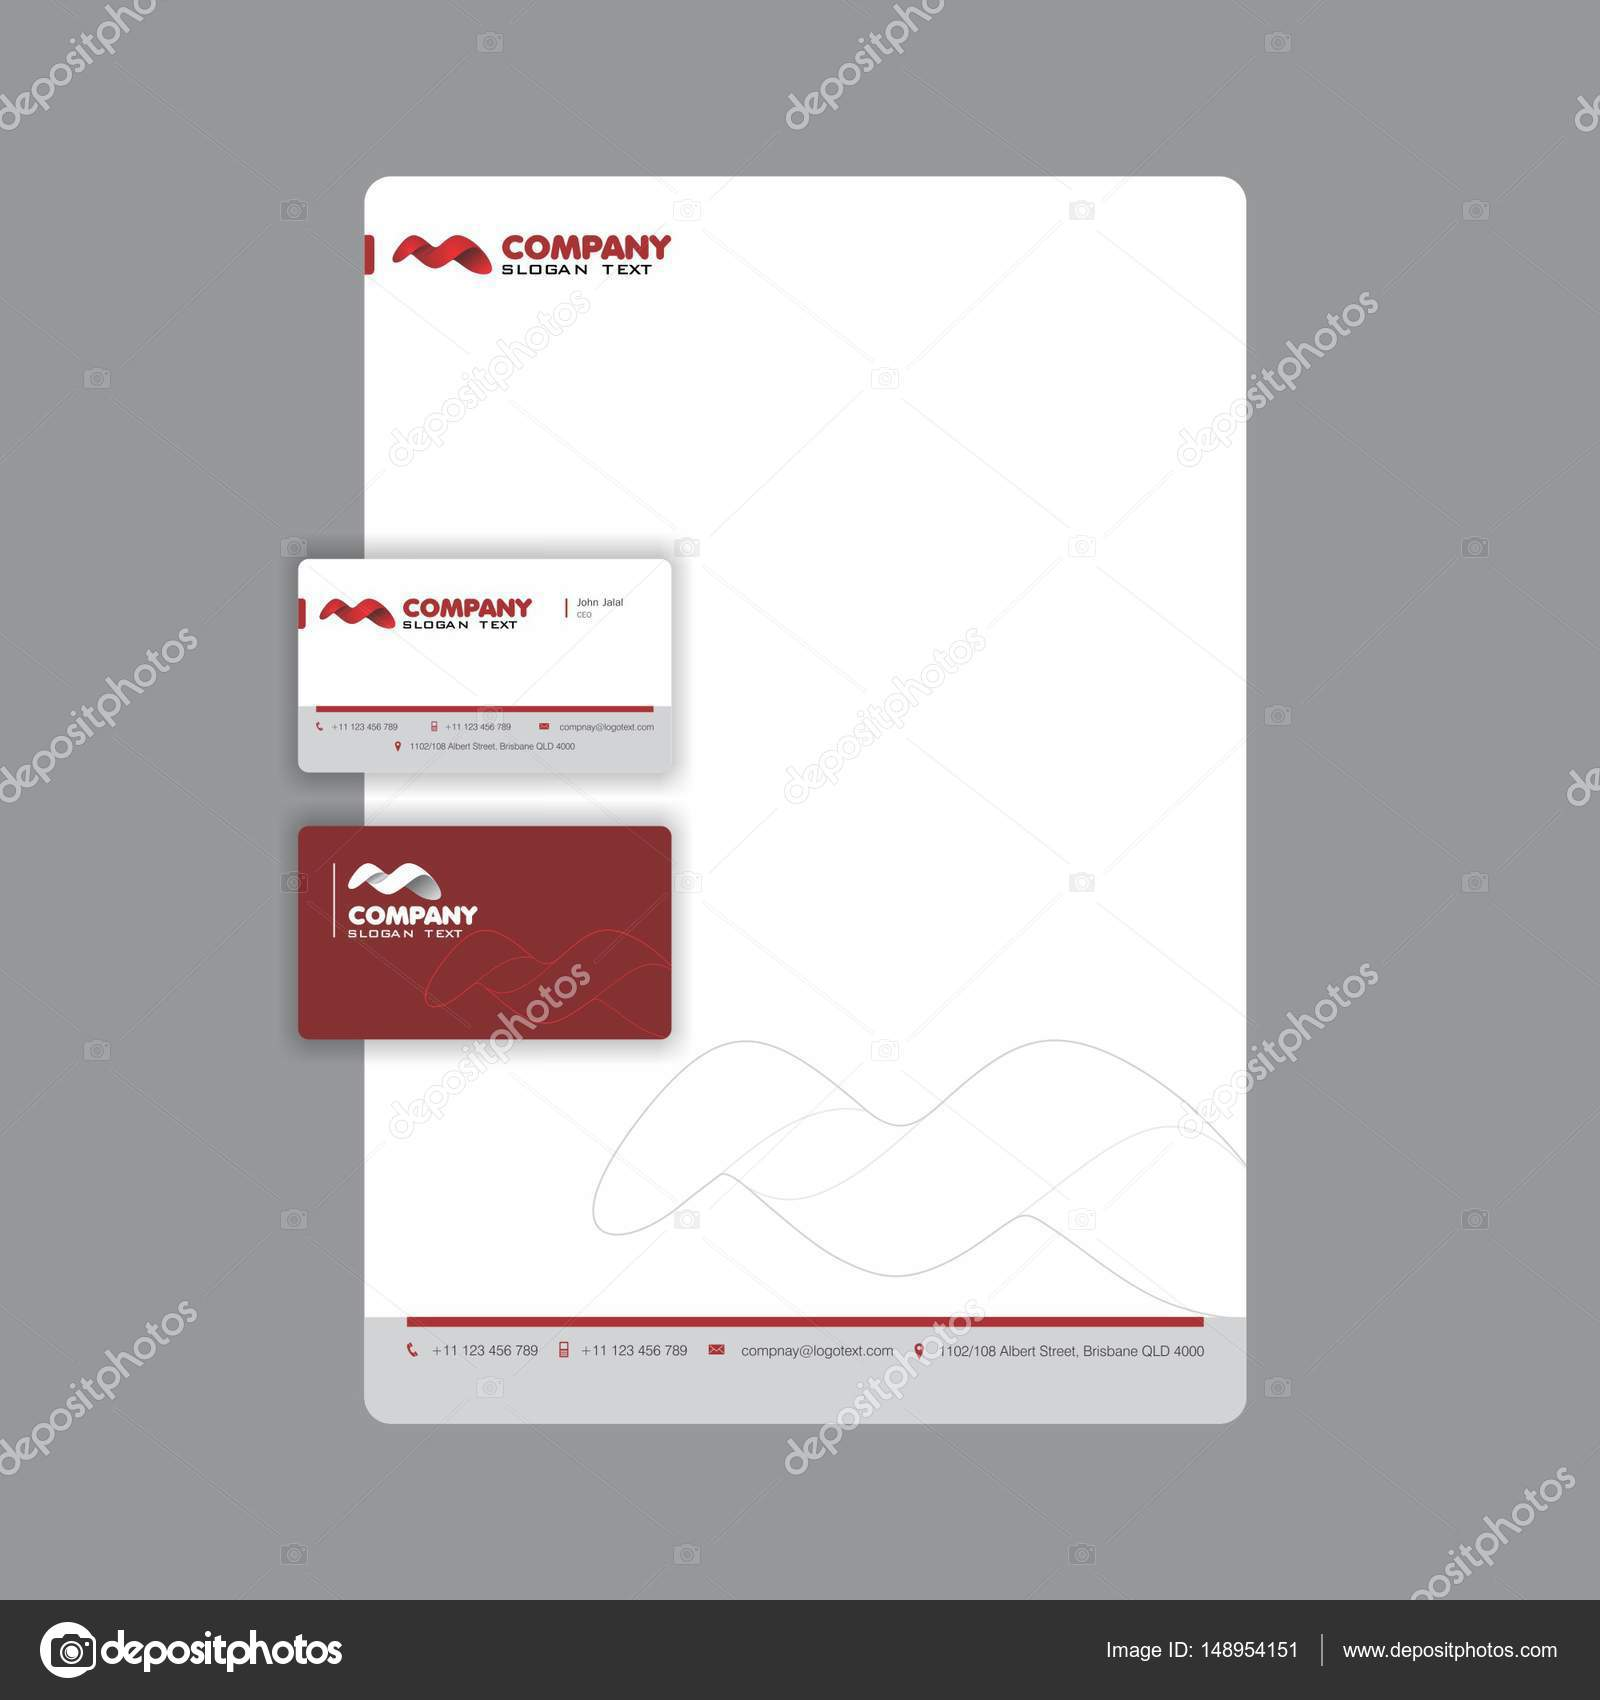 Professional business card and letterhead design stock vector professional business card and letterhead design stock vector reheart Choice Image